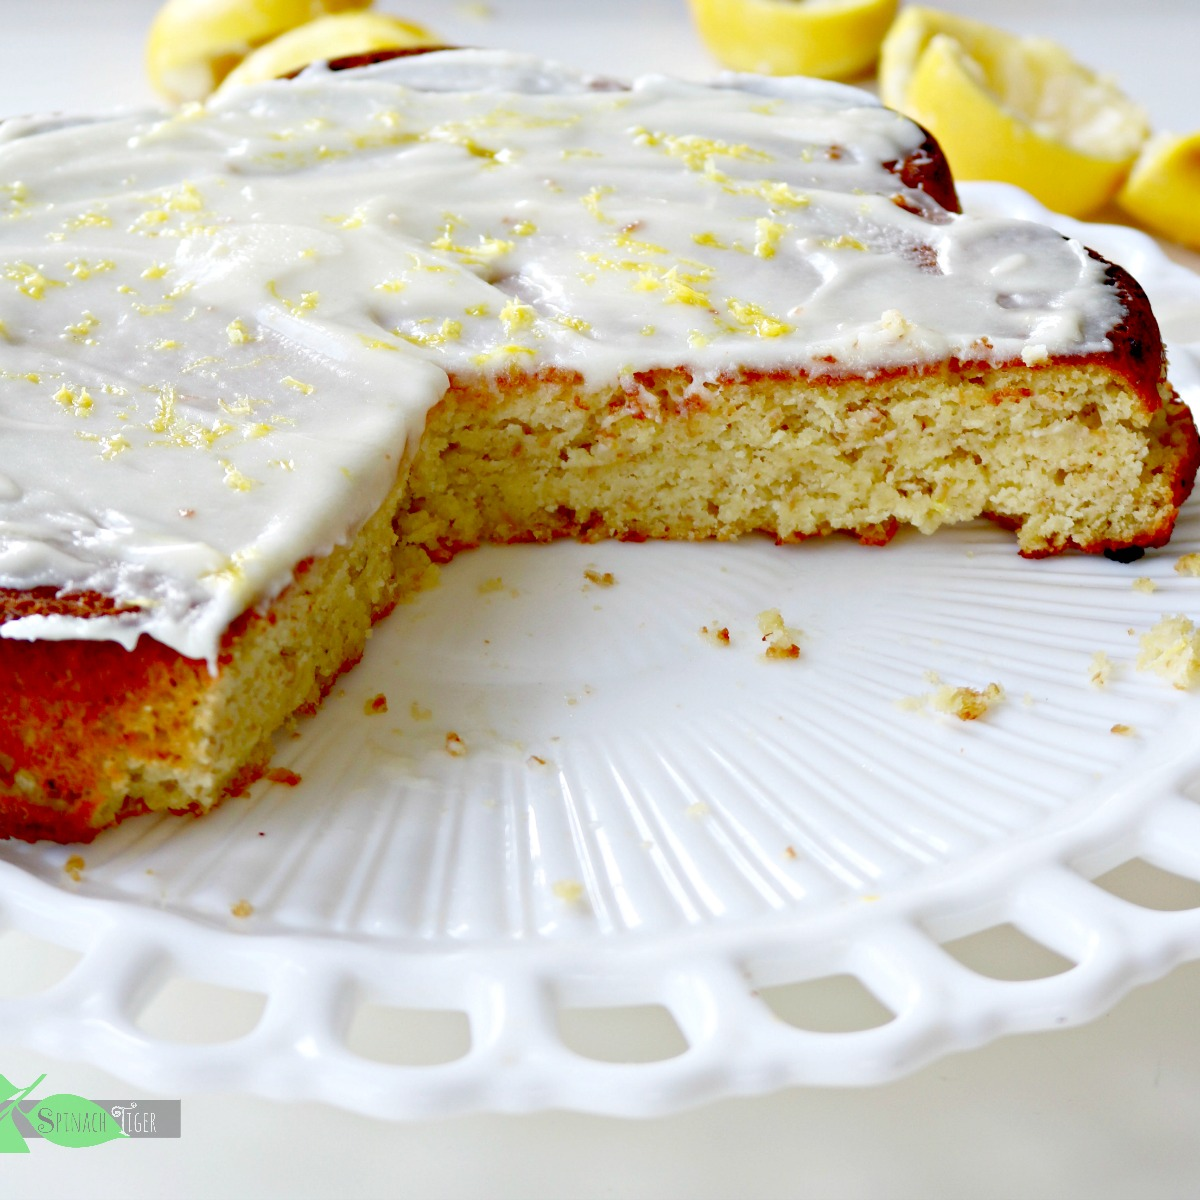 Grain Free Lemon Cake and Holiday Side Dishes from Spinach Tiger